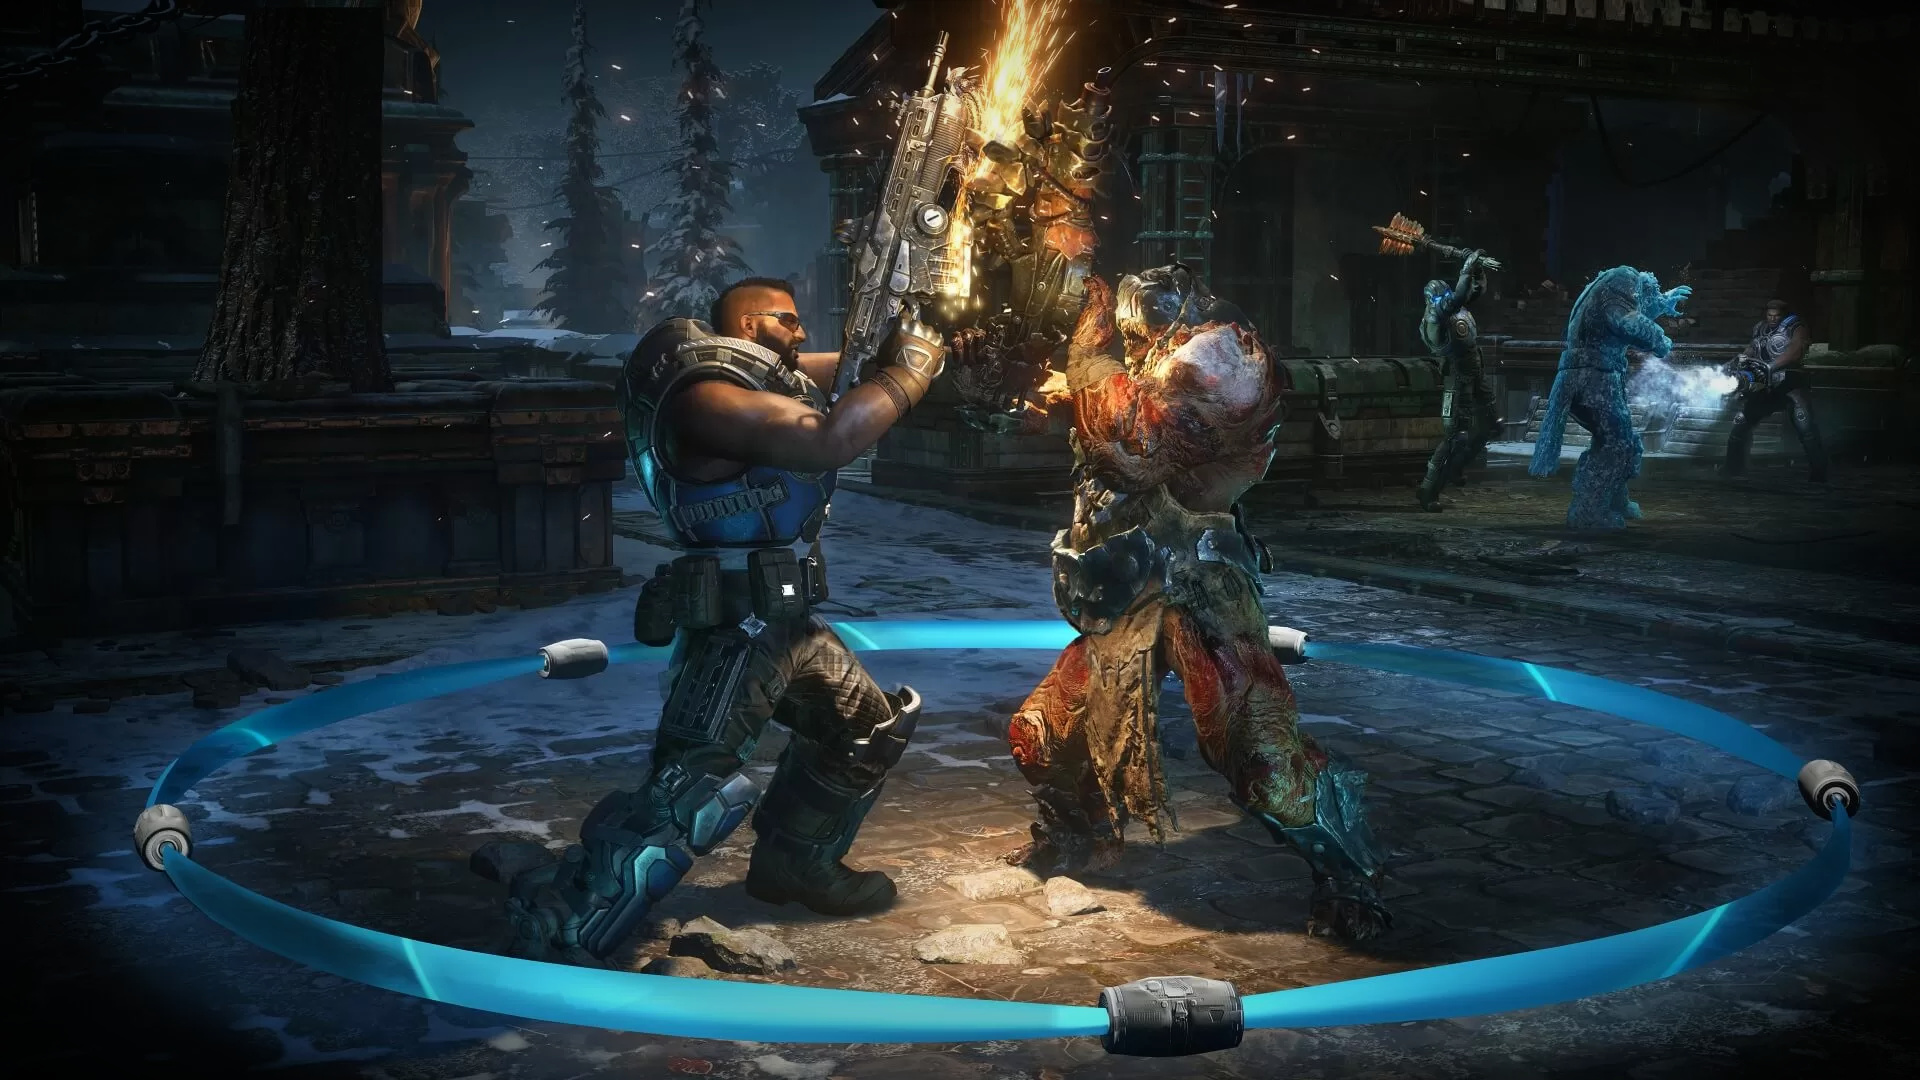 10979 sixfeatureswewantfromnextgenconsoles gears5at120hz